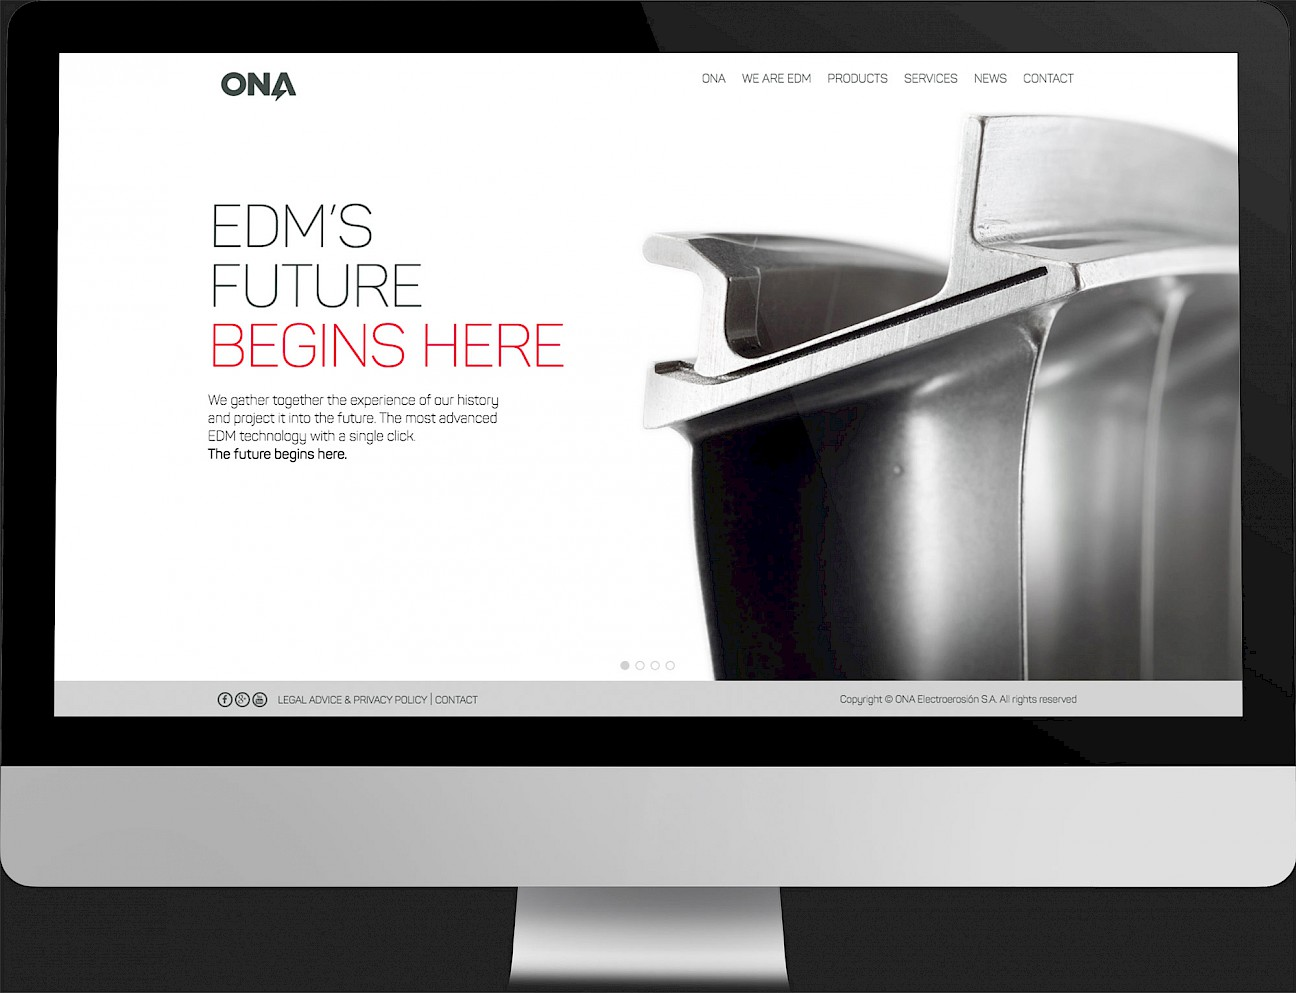 digital narrative move website design technology ona branding 05 spaces